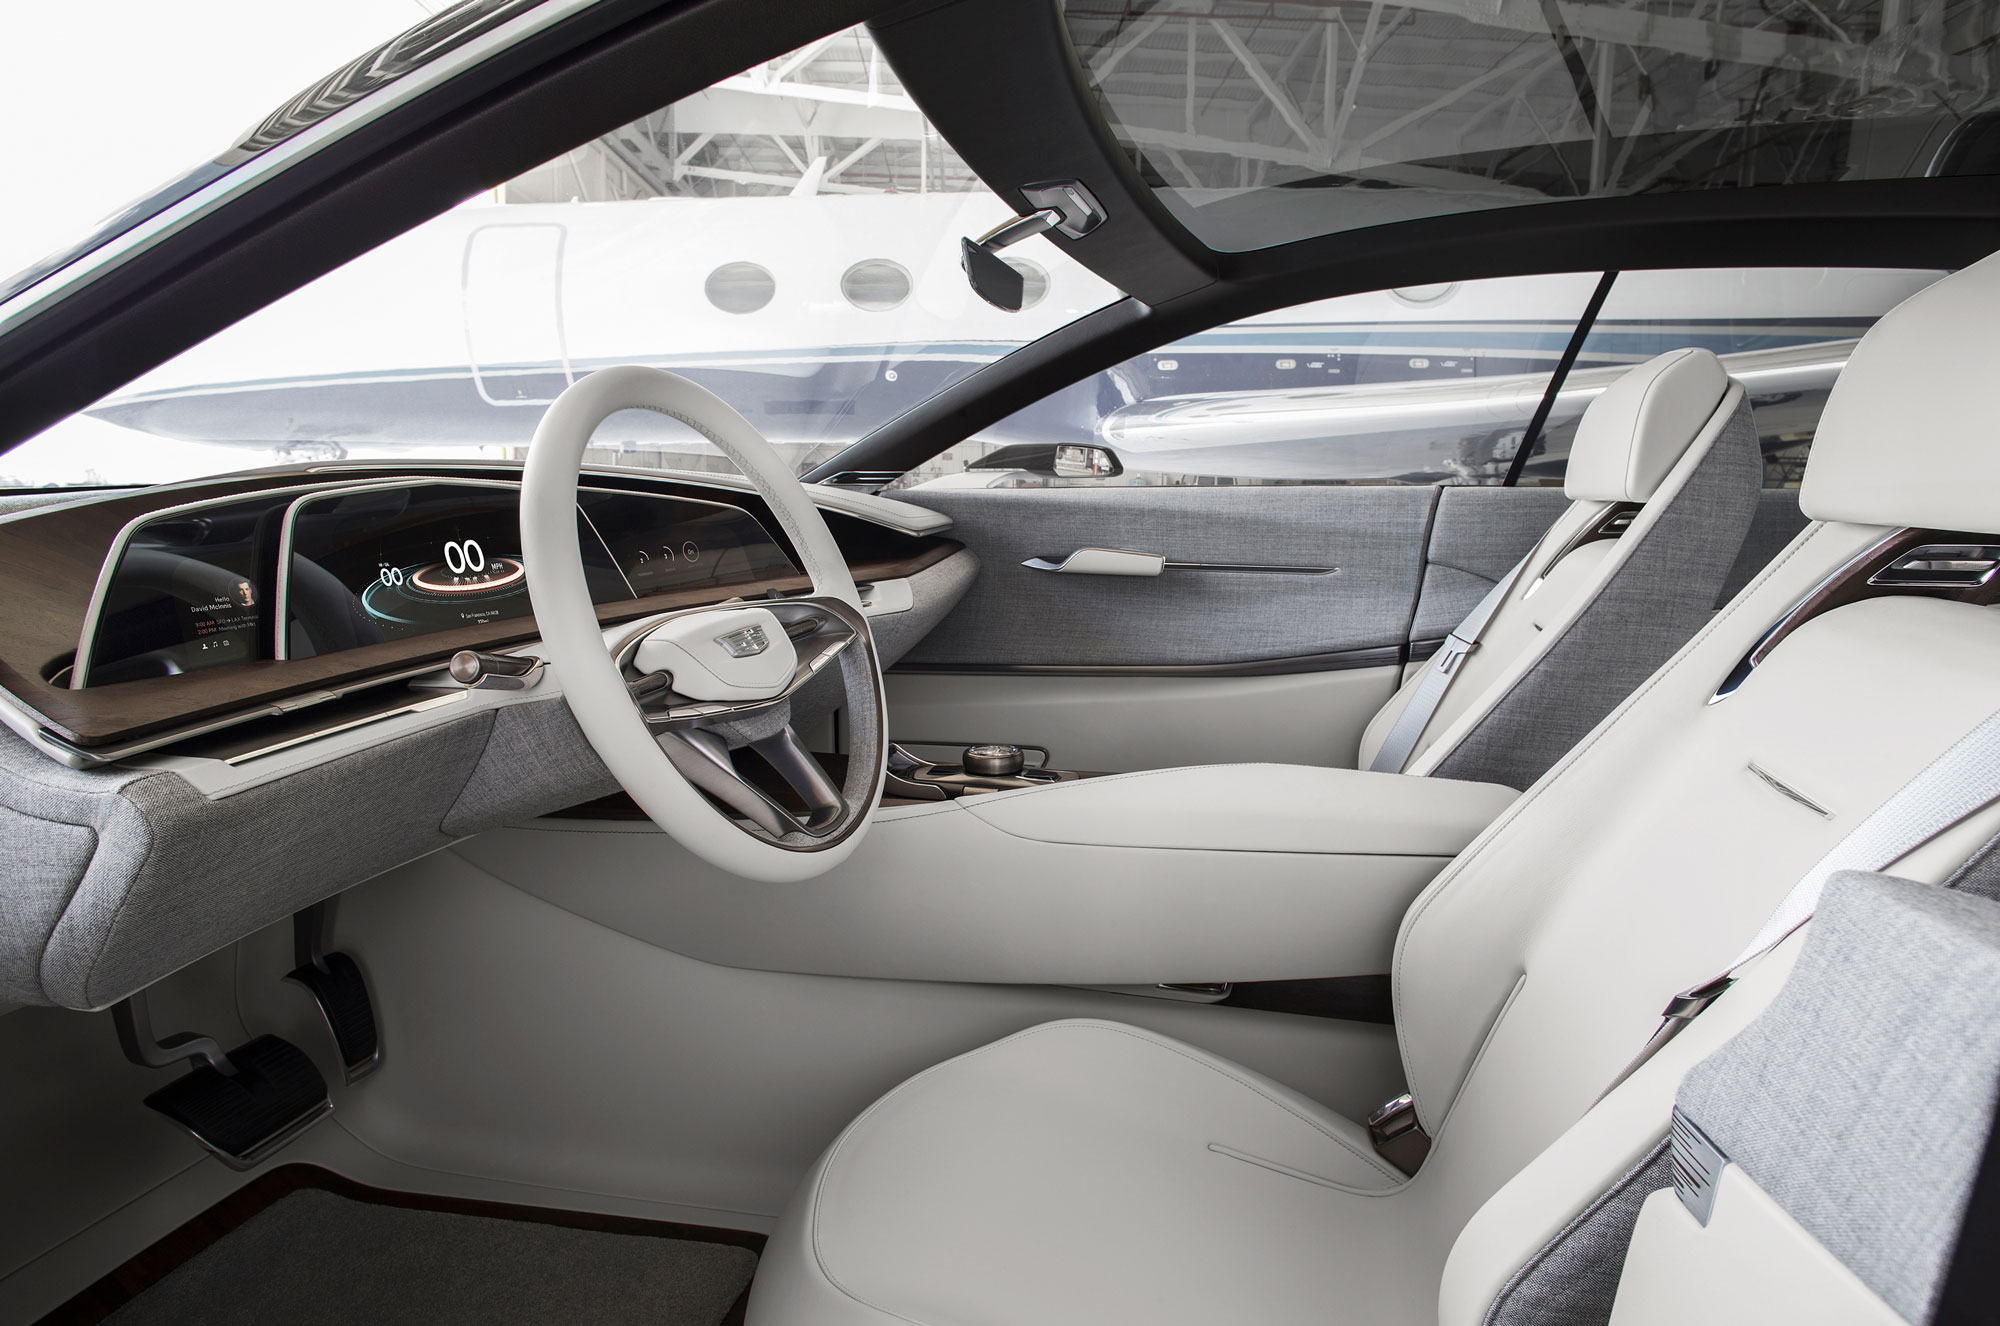 Cadillac escala scales up luxury car interiors for Top 50 luxury car interior designs